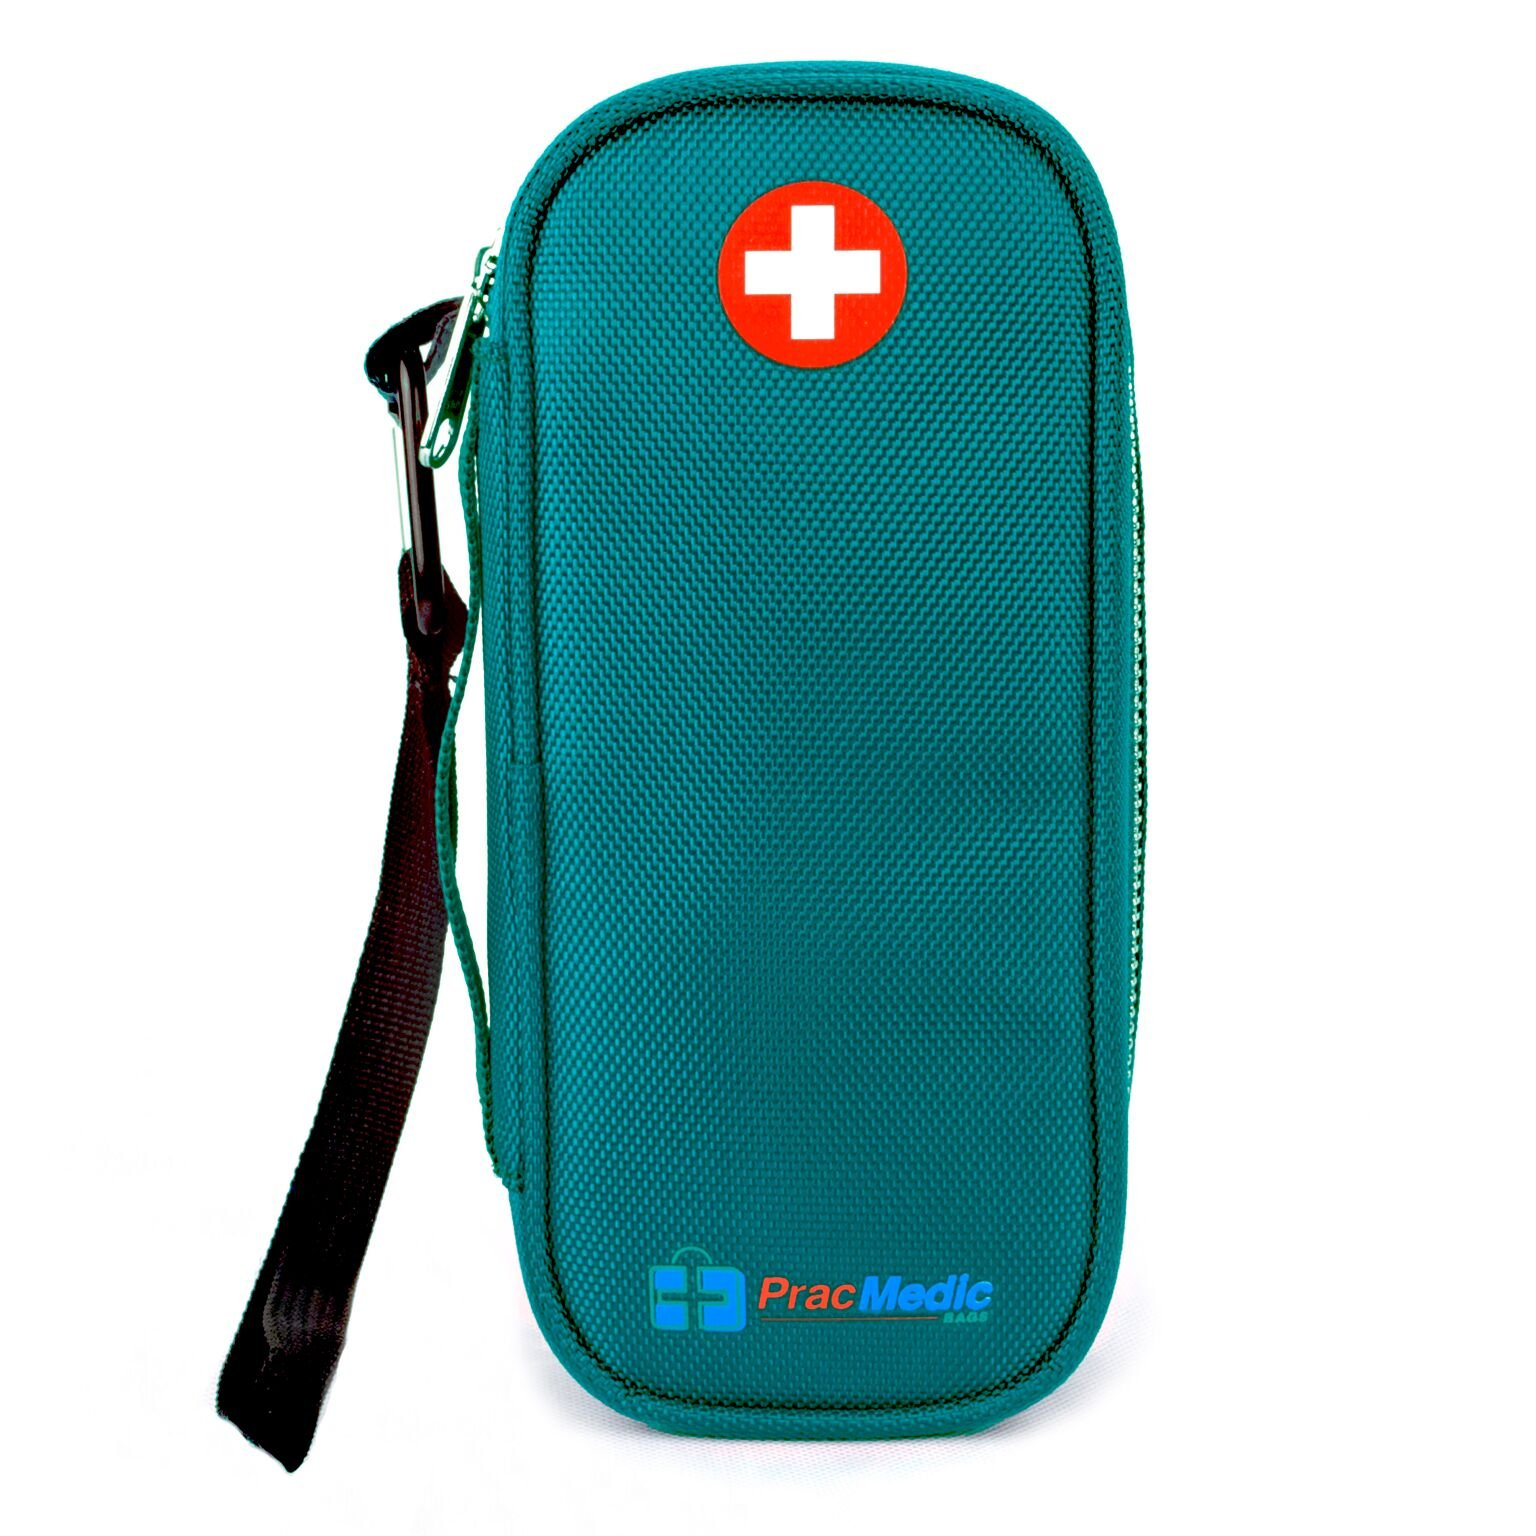 EPIPEN Case, Insulated - Holds 2 Epi Pens/Auvi-Q, Asthma Inhaler, Generic Benadryl, Nasal Spray, Eye Drops, Medicine. Insulin Case - fits 2 Insulin Pens, Vials, Syringes, Ice Packs (Teal)